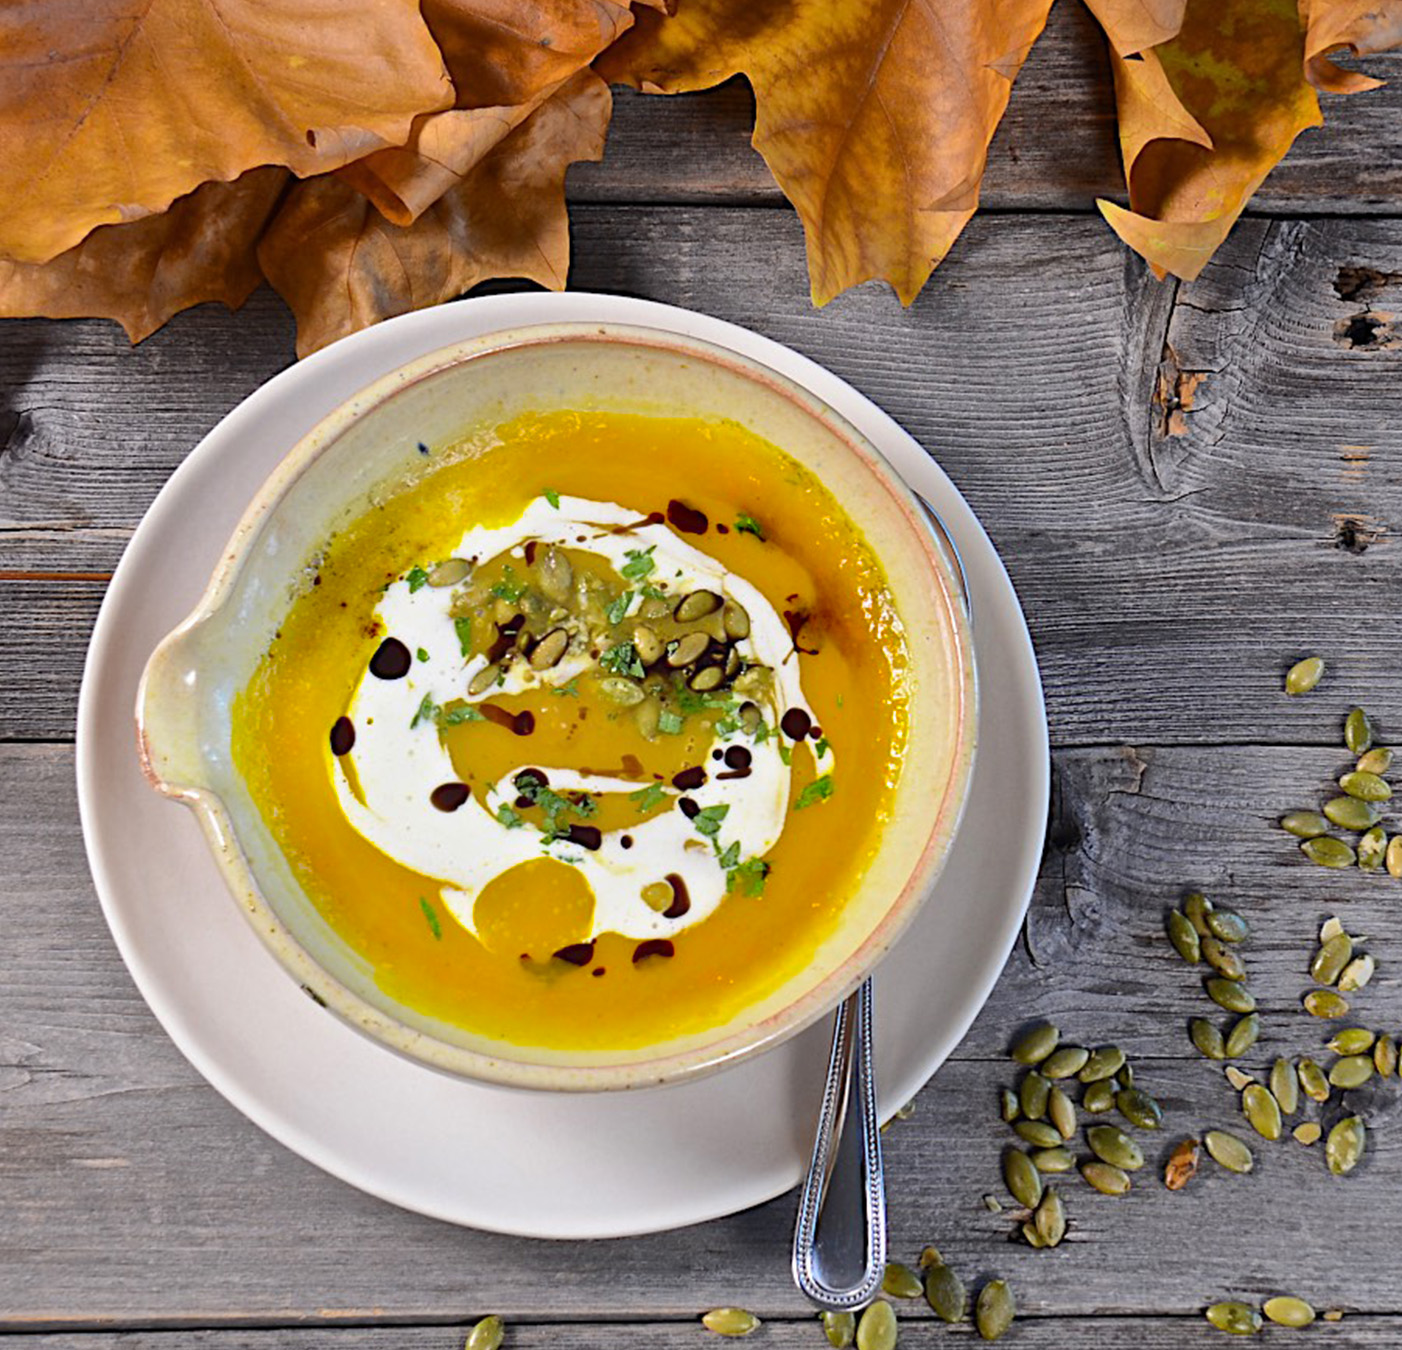 Roasted winter squash soup with creme fraiche